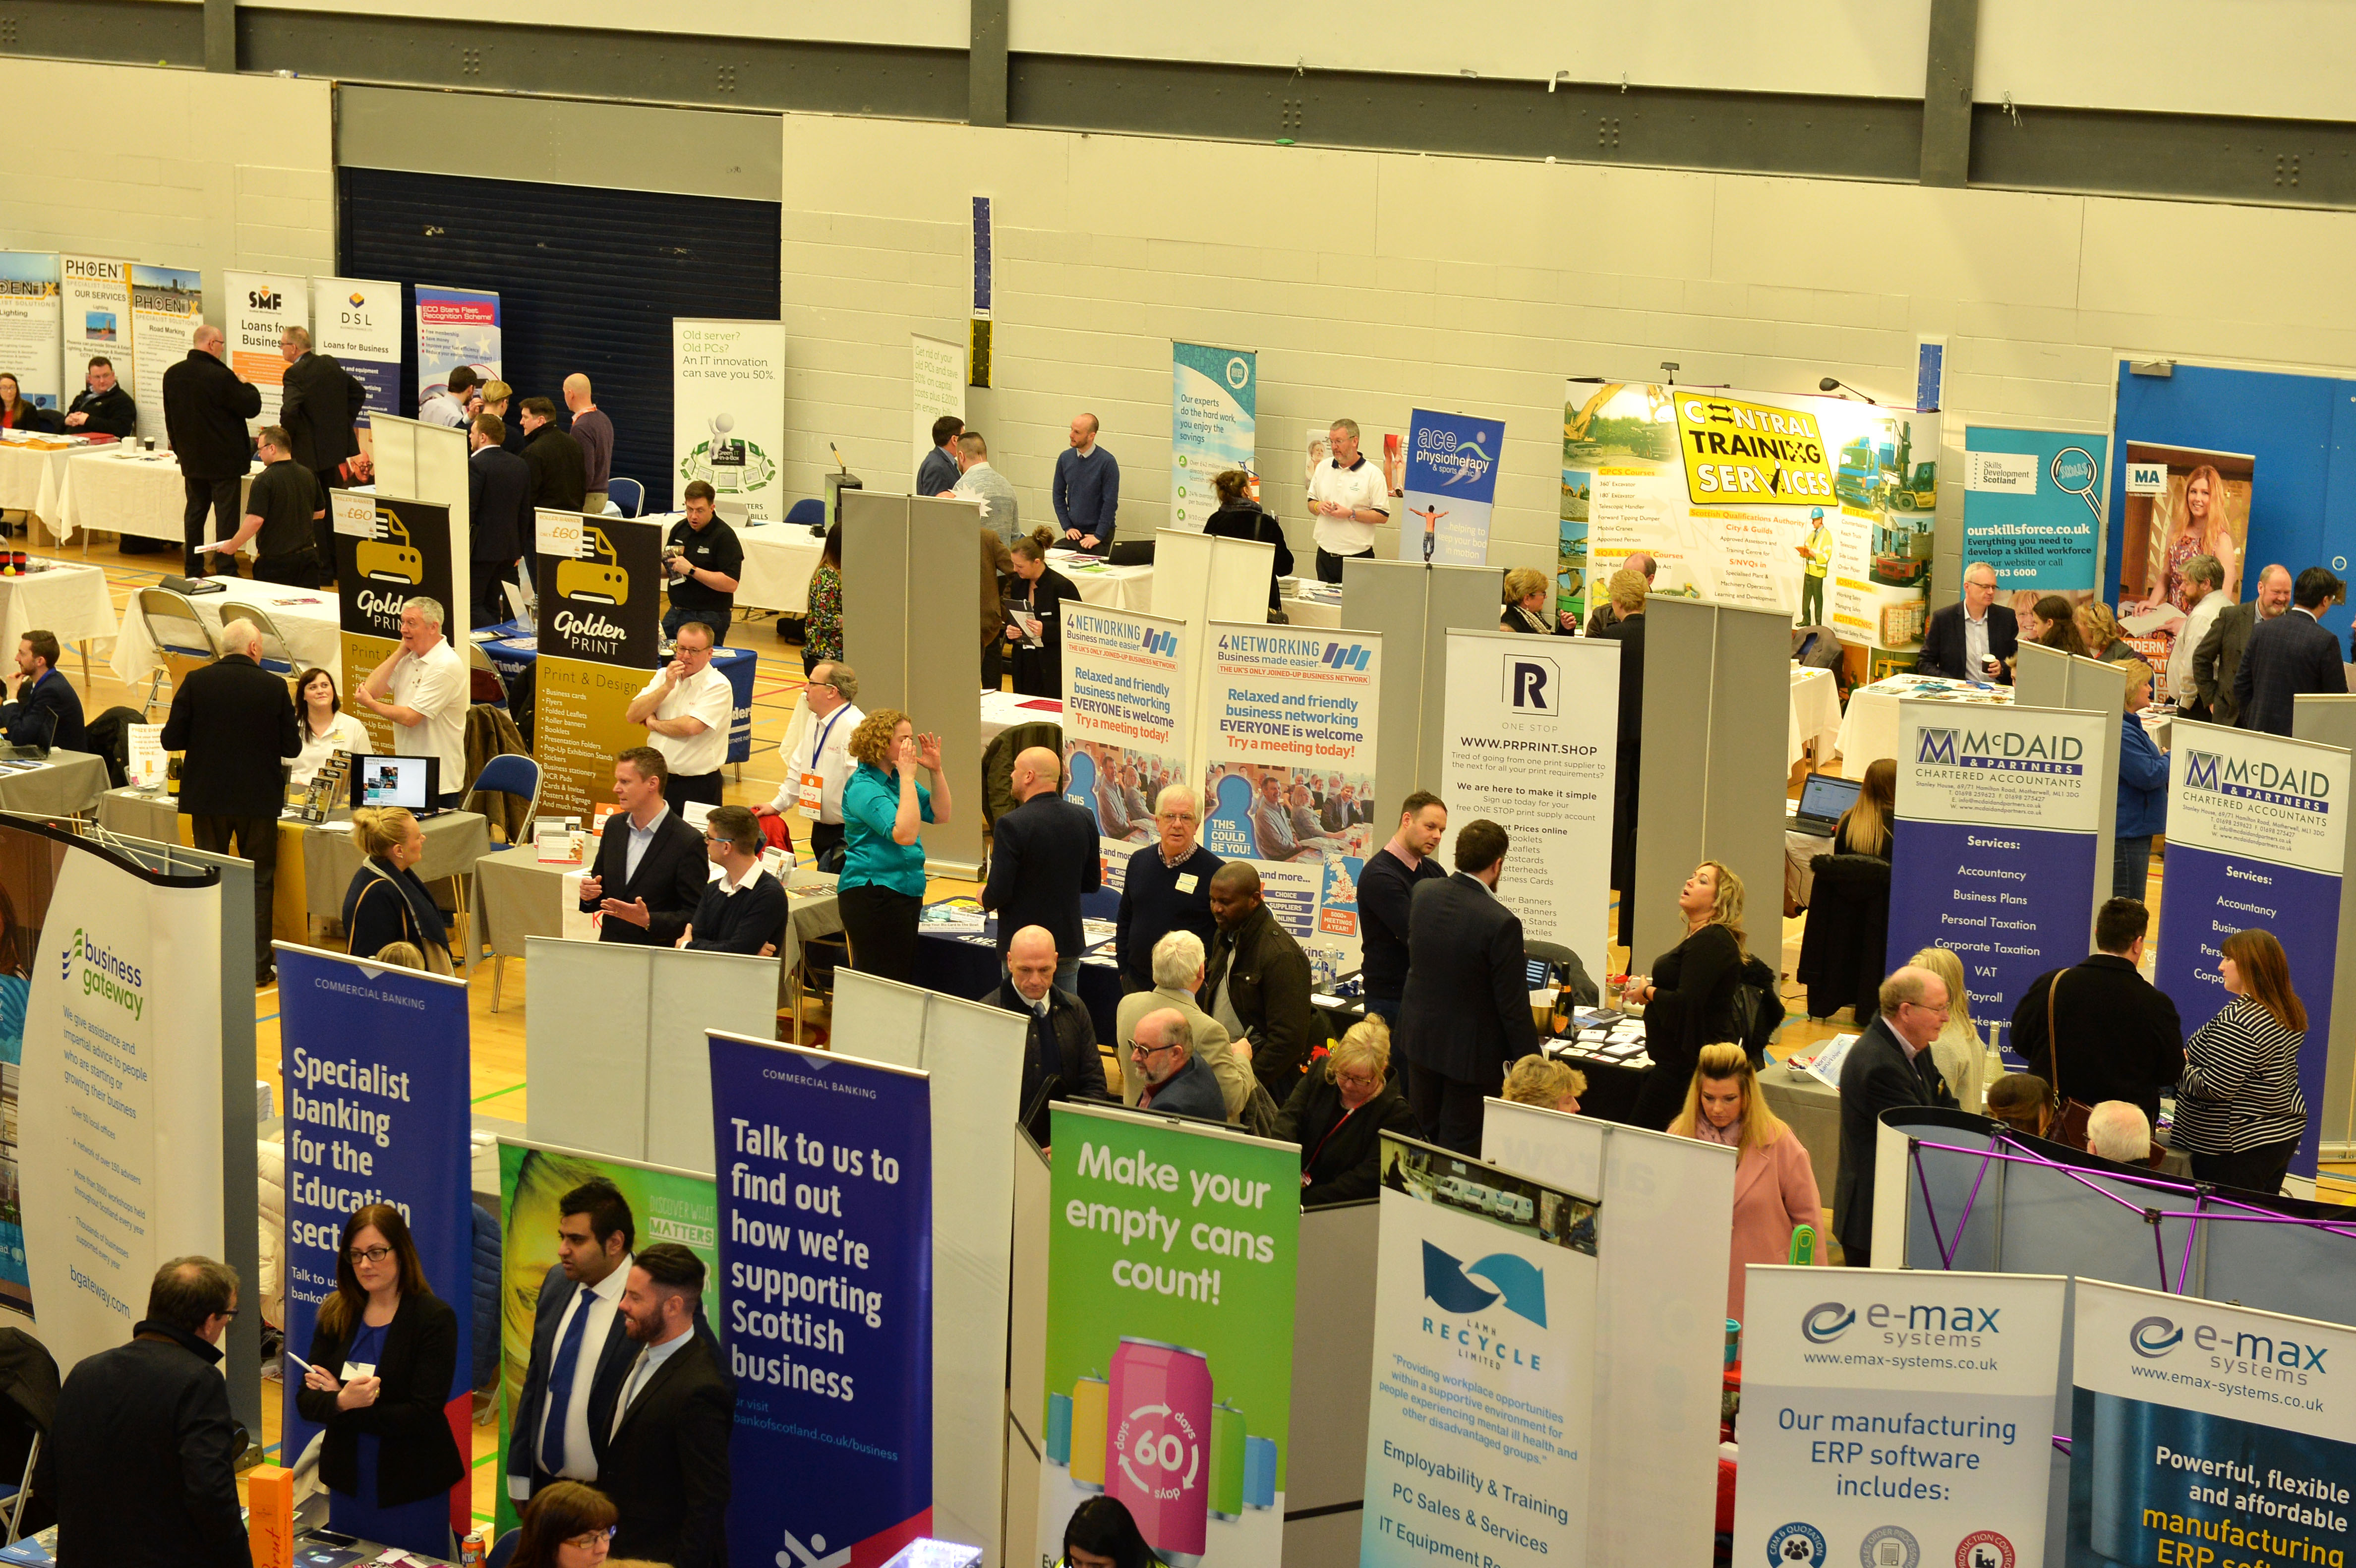 Lanarkshire Business Events – All Latest Business Events In